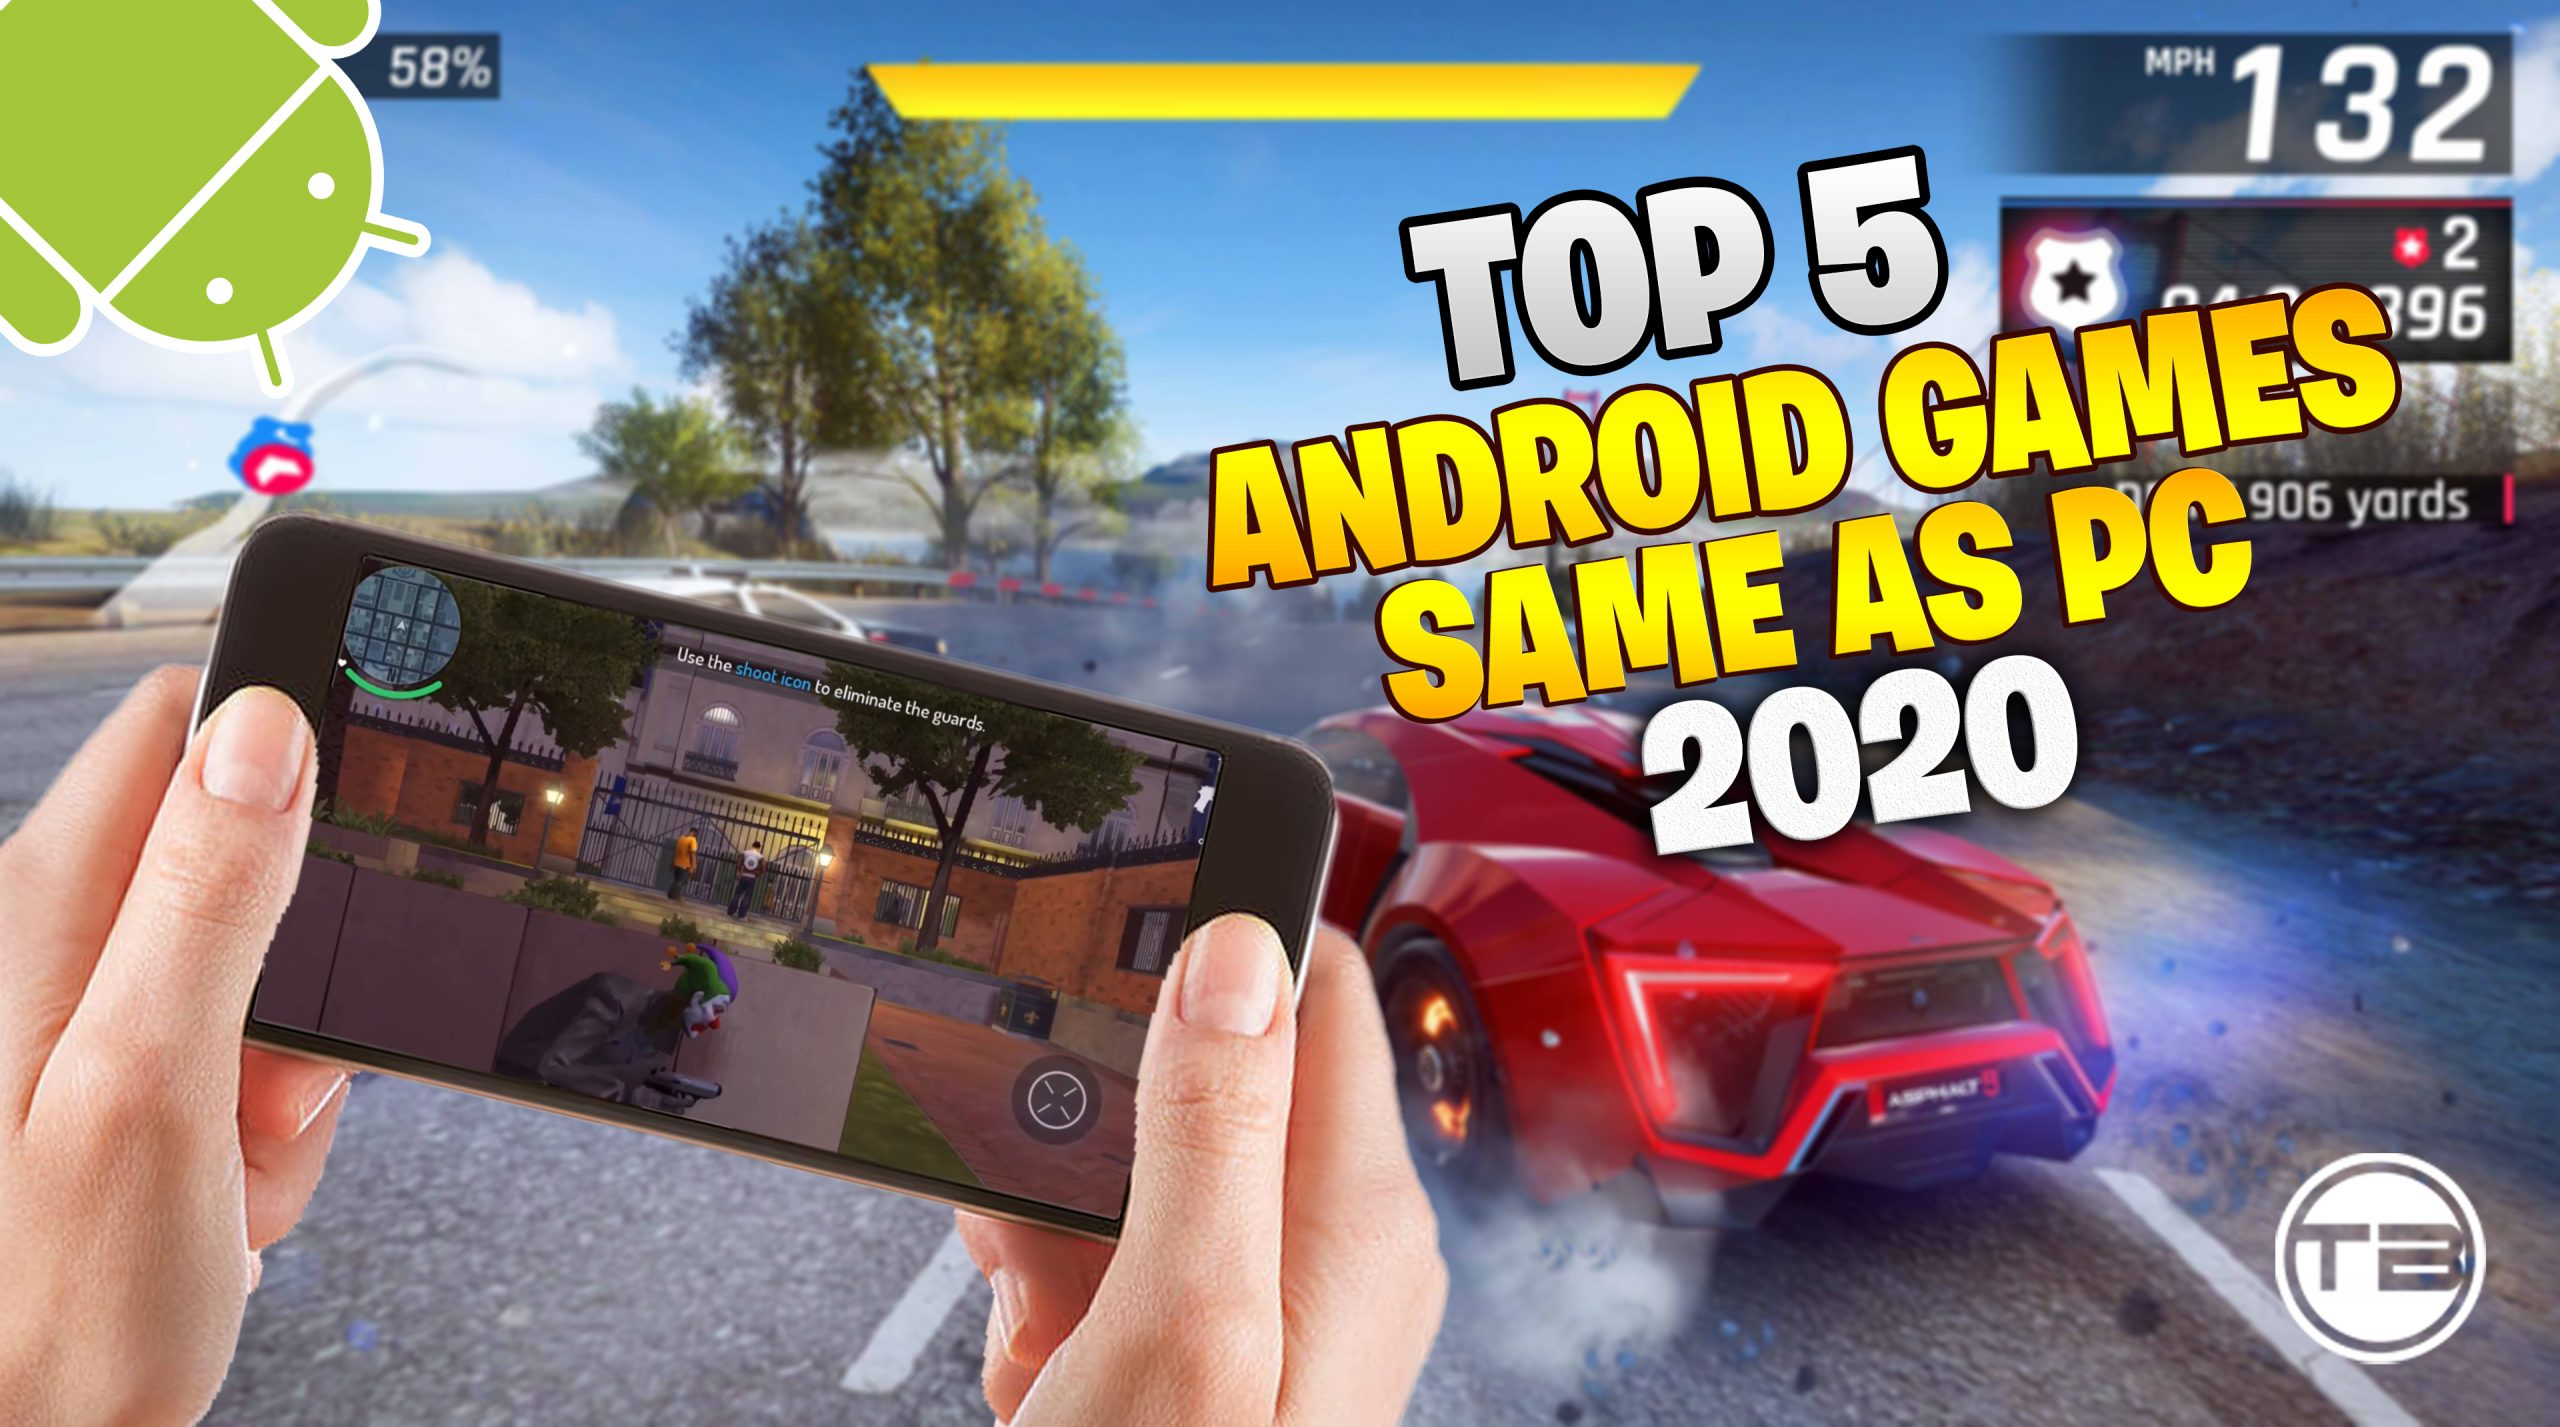 Top 5 New Android Game Same As Pc 2020 High Graphics Techno Brotherzz